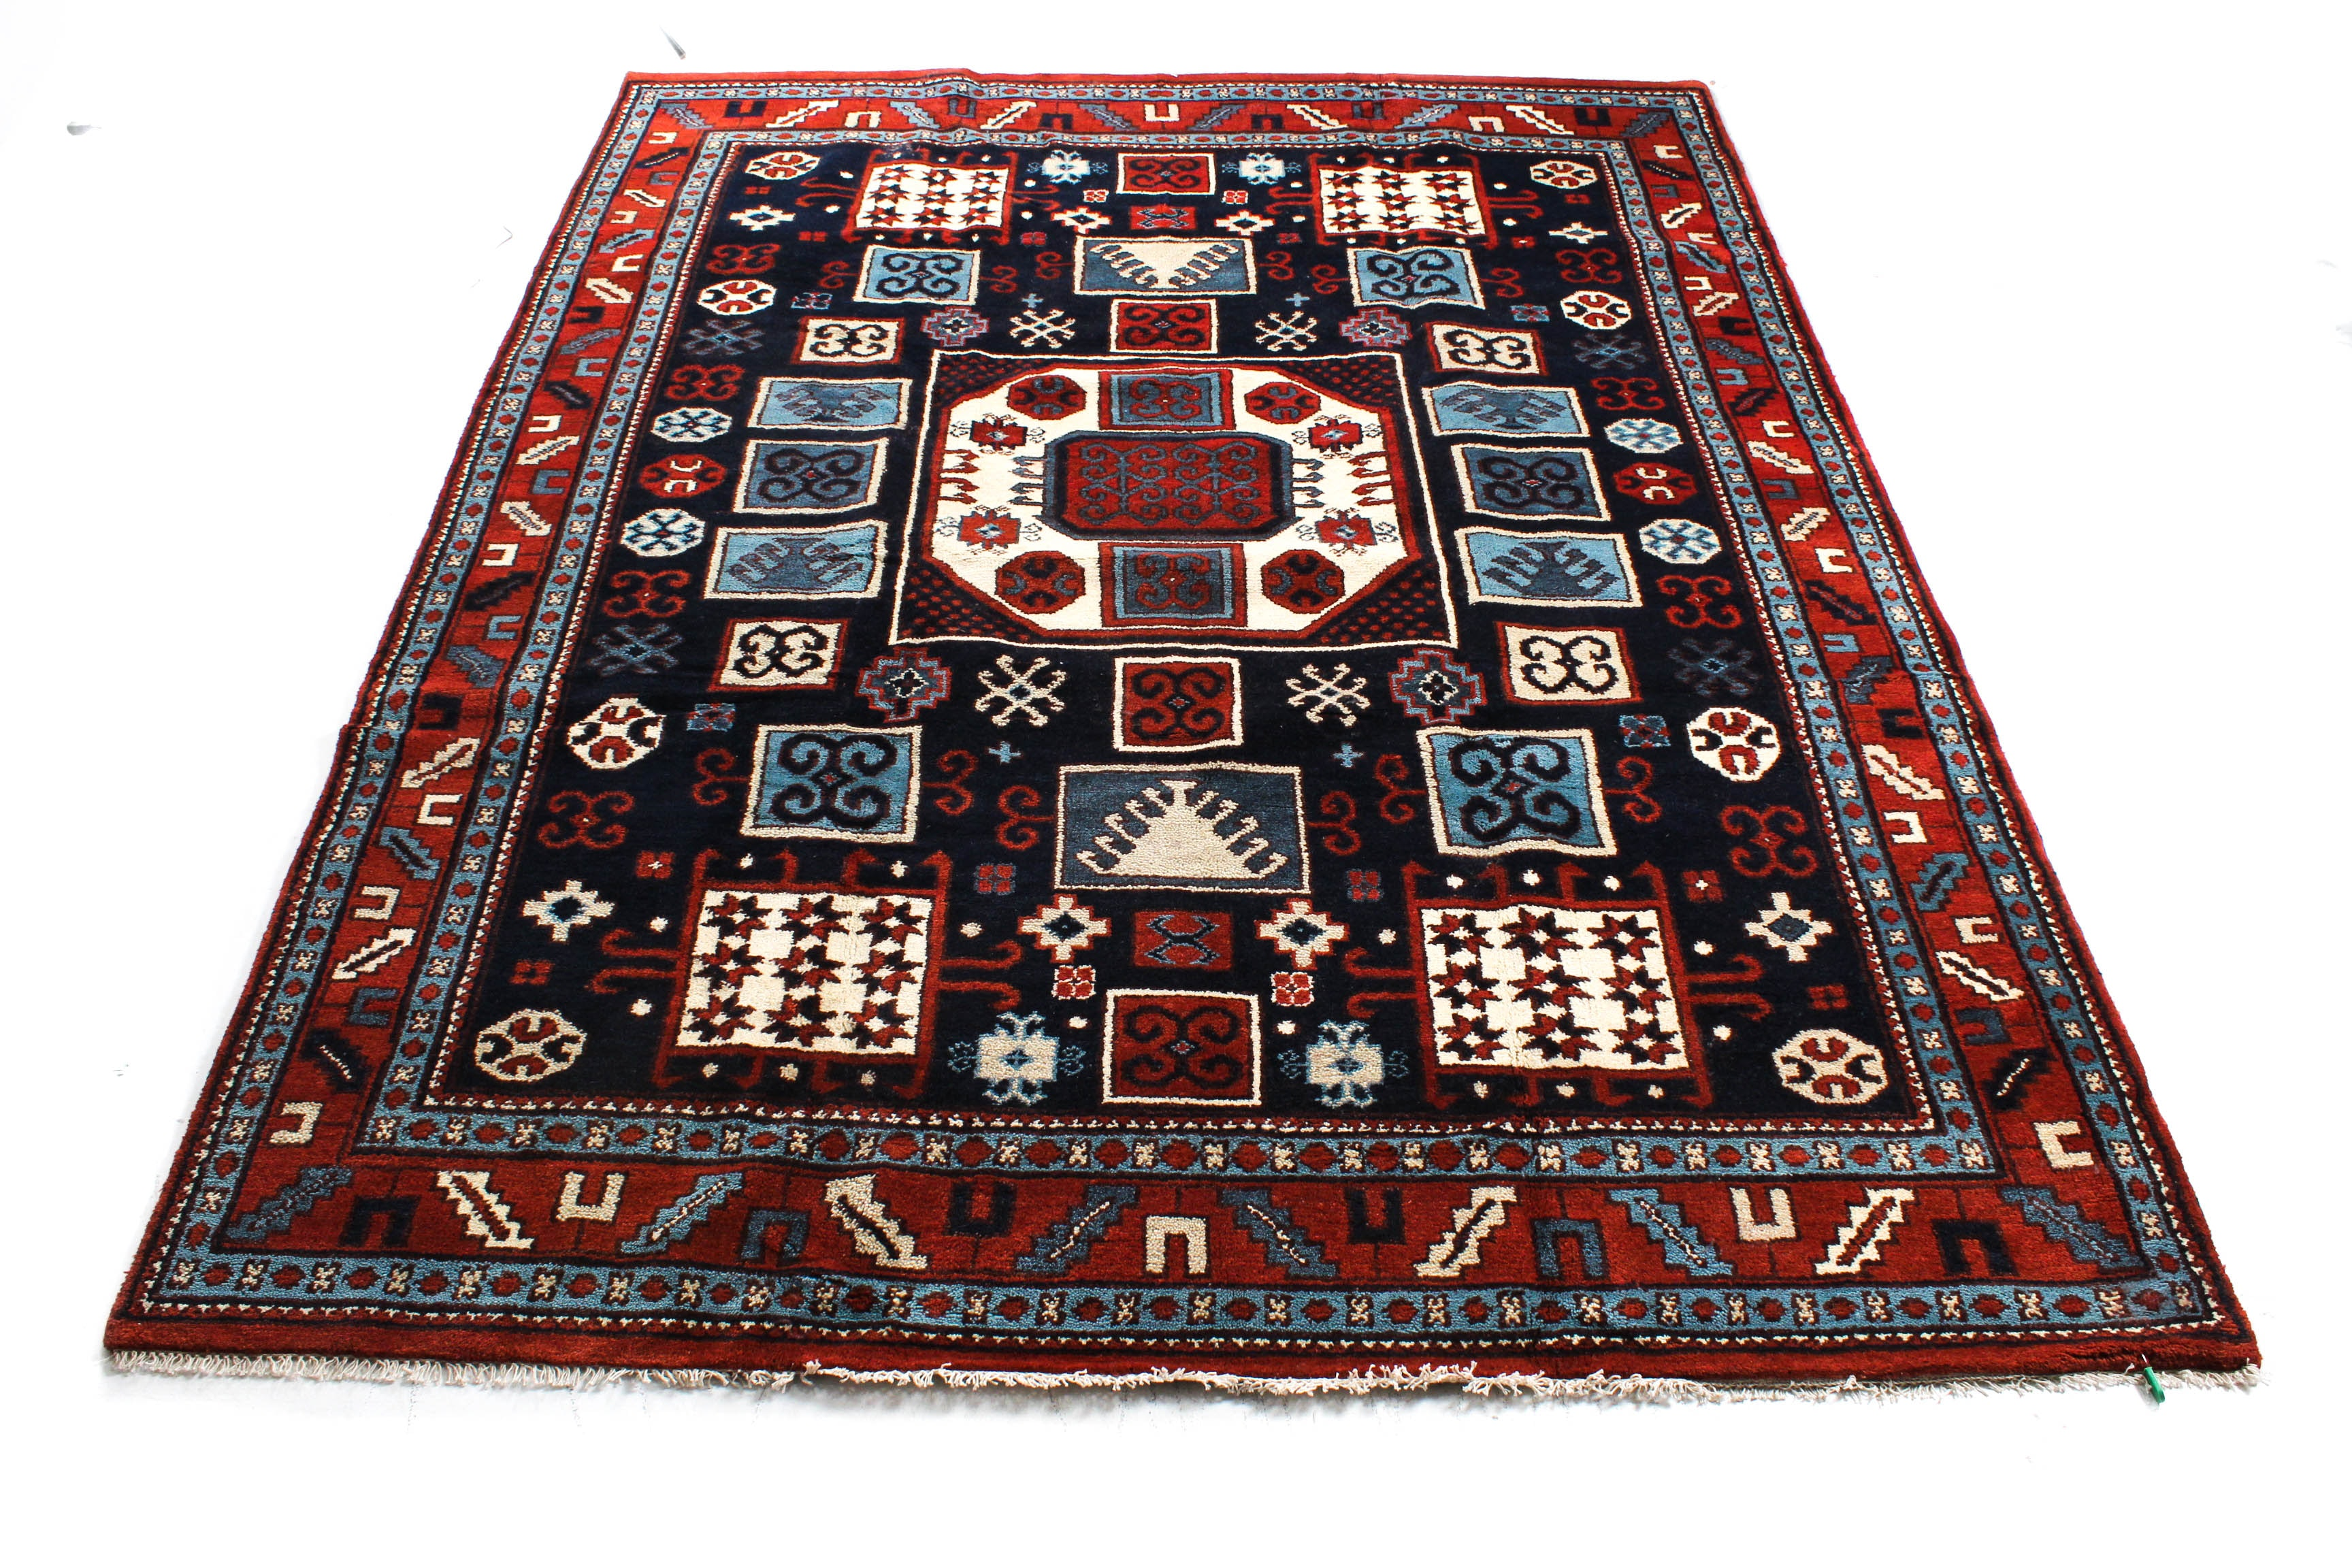 Hand-Knotted Indo-Caucasian Room Size Rug